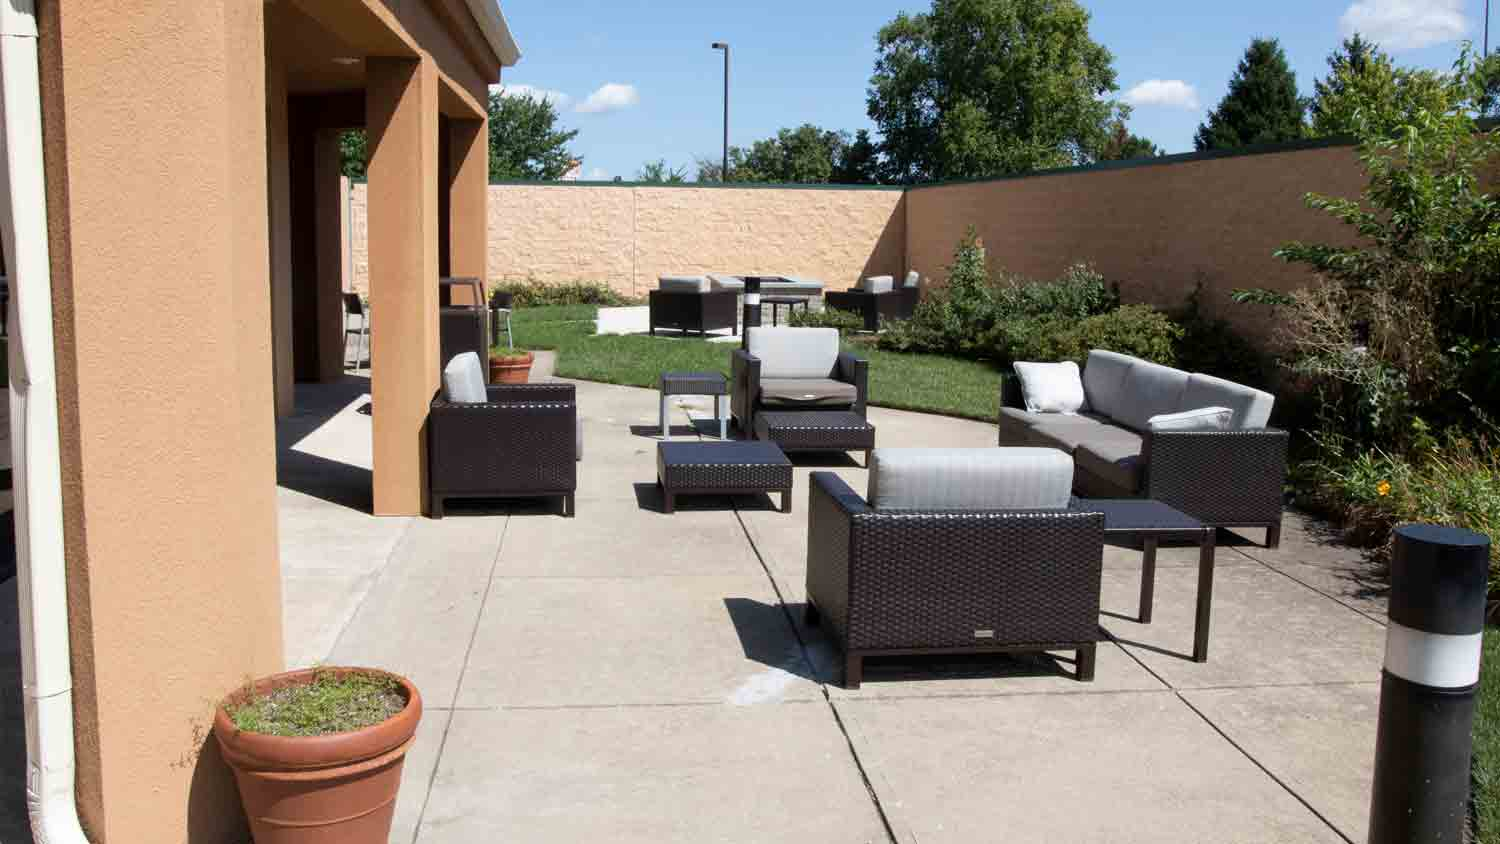 Courtyard by Marriott Indianapolis South 5